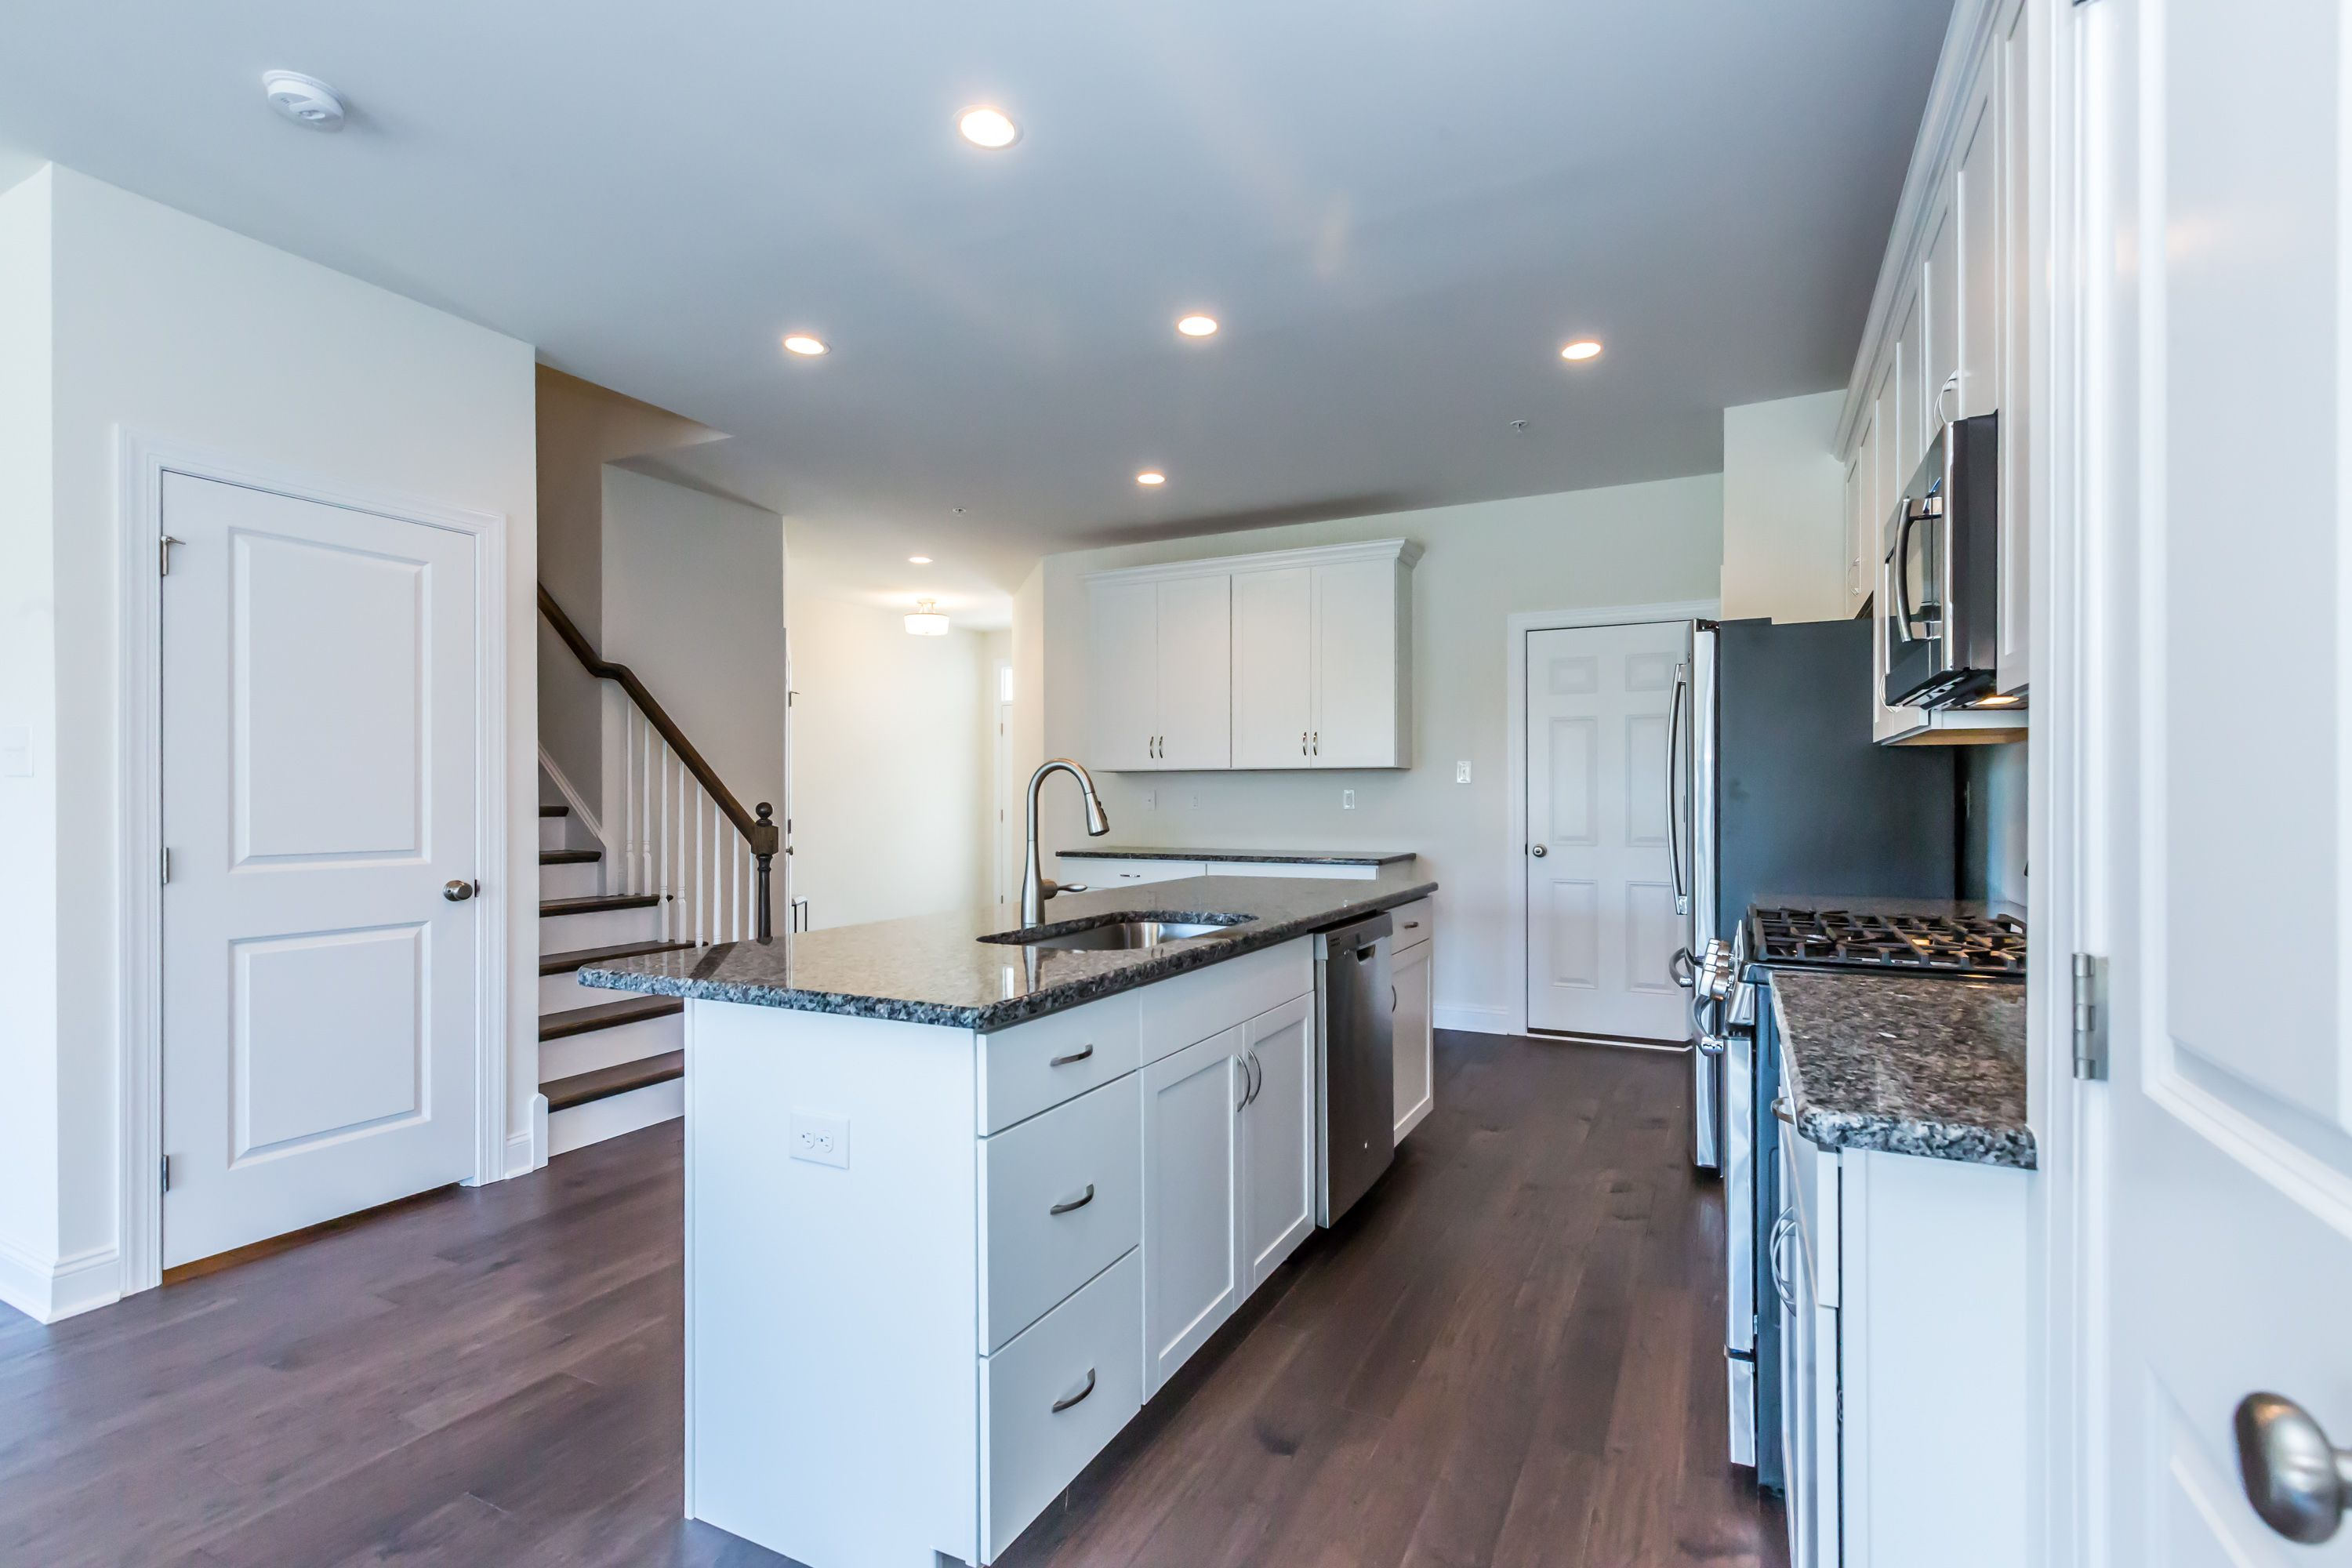 Kitchen featured in the Prestley By Rouse Chamberlin Homes in Philadelphia, PA